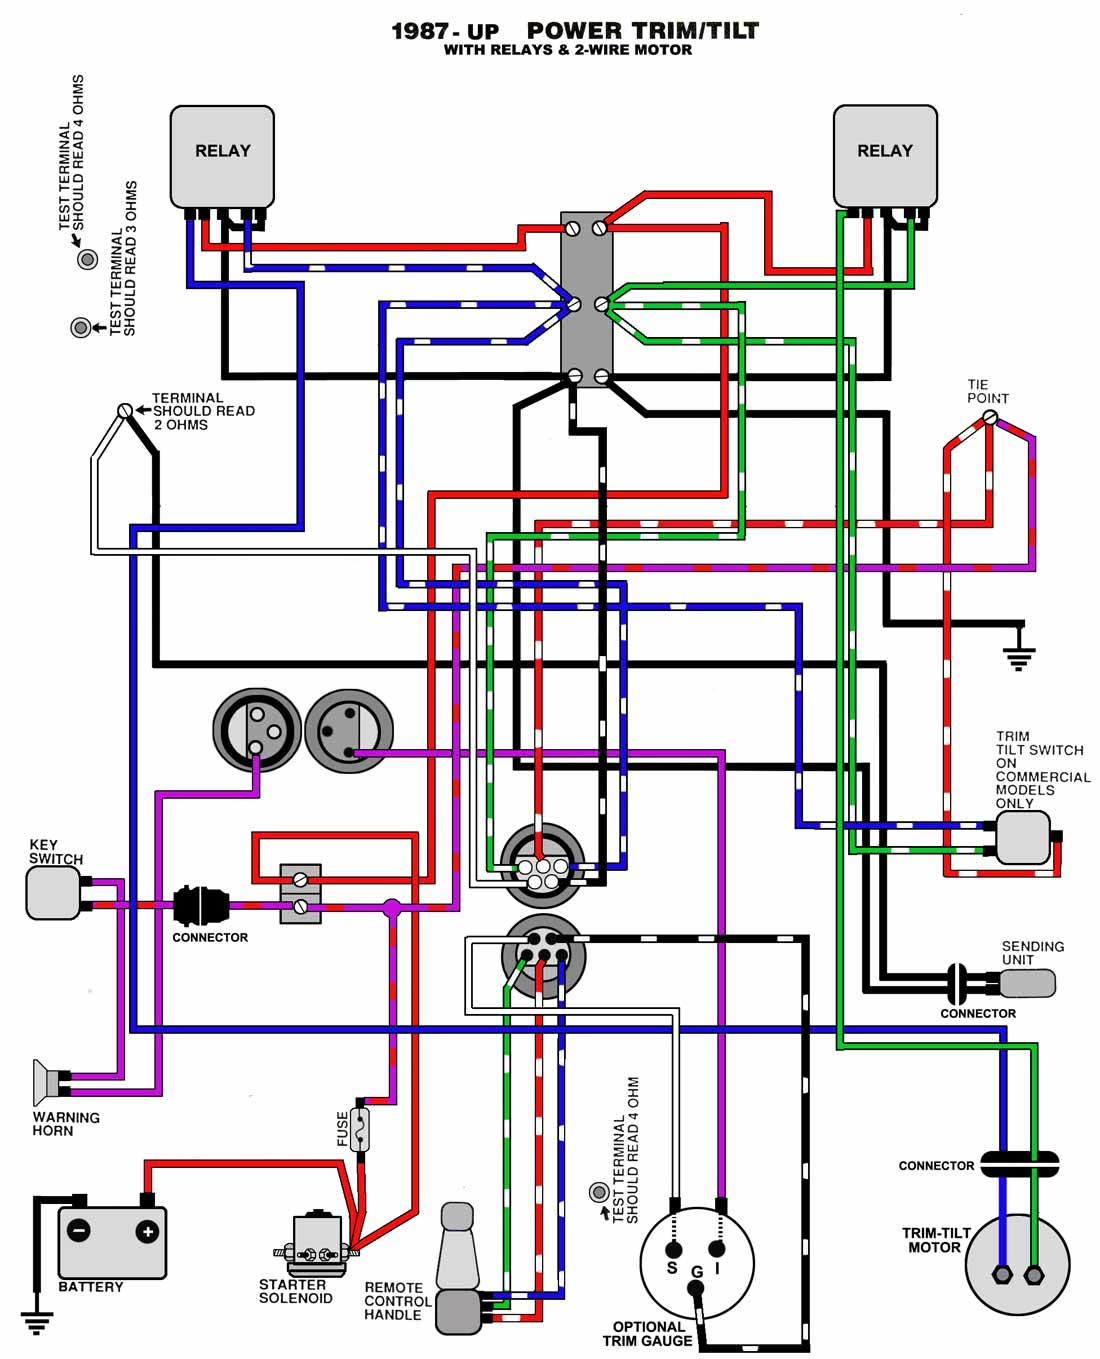 TnT_87_UP mastertech marine evinrude johnson outboard wiring diagrams suzuki outboard ignition switch wiring diagram at eliteediting.co